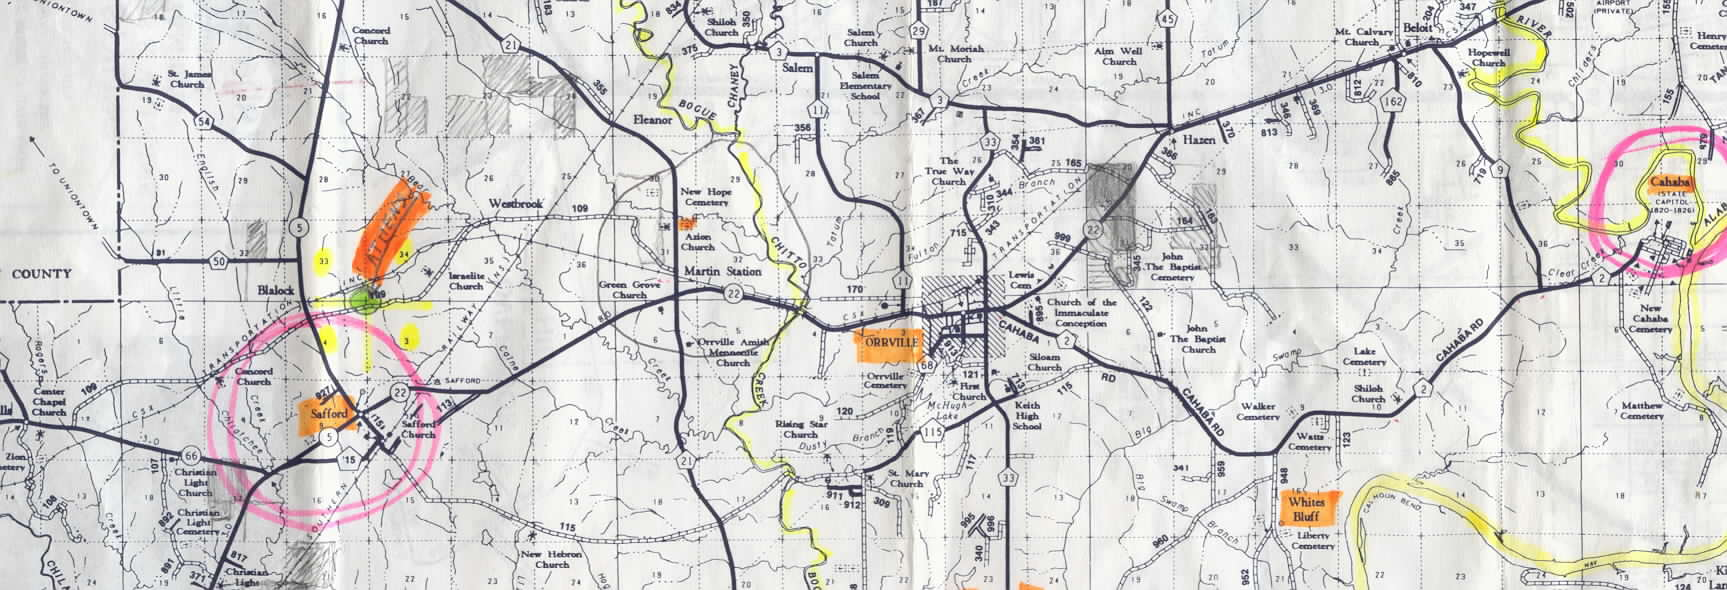 Alabama wilcox county catherine - This Is A Larger Portion Of The Map See Item 13 Above Of Dallas County Alabama Showing Its West Central Parts